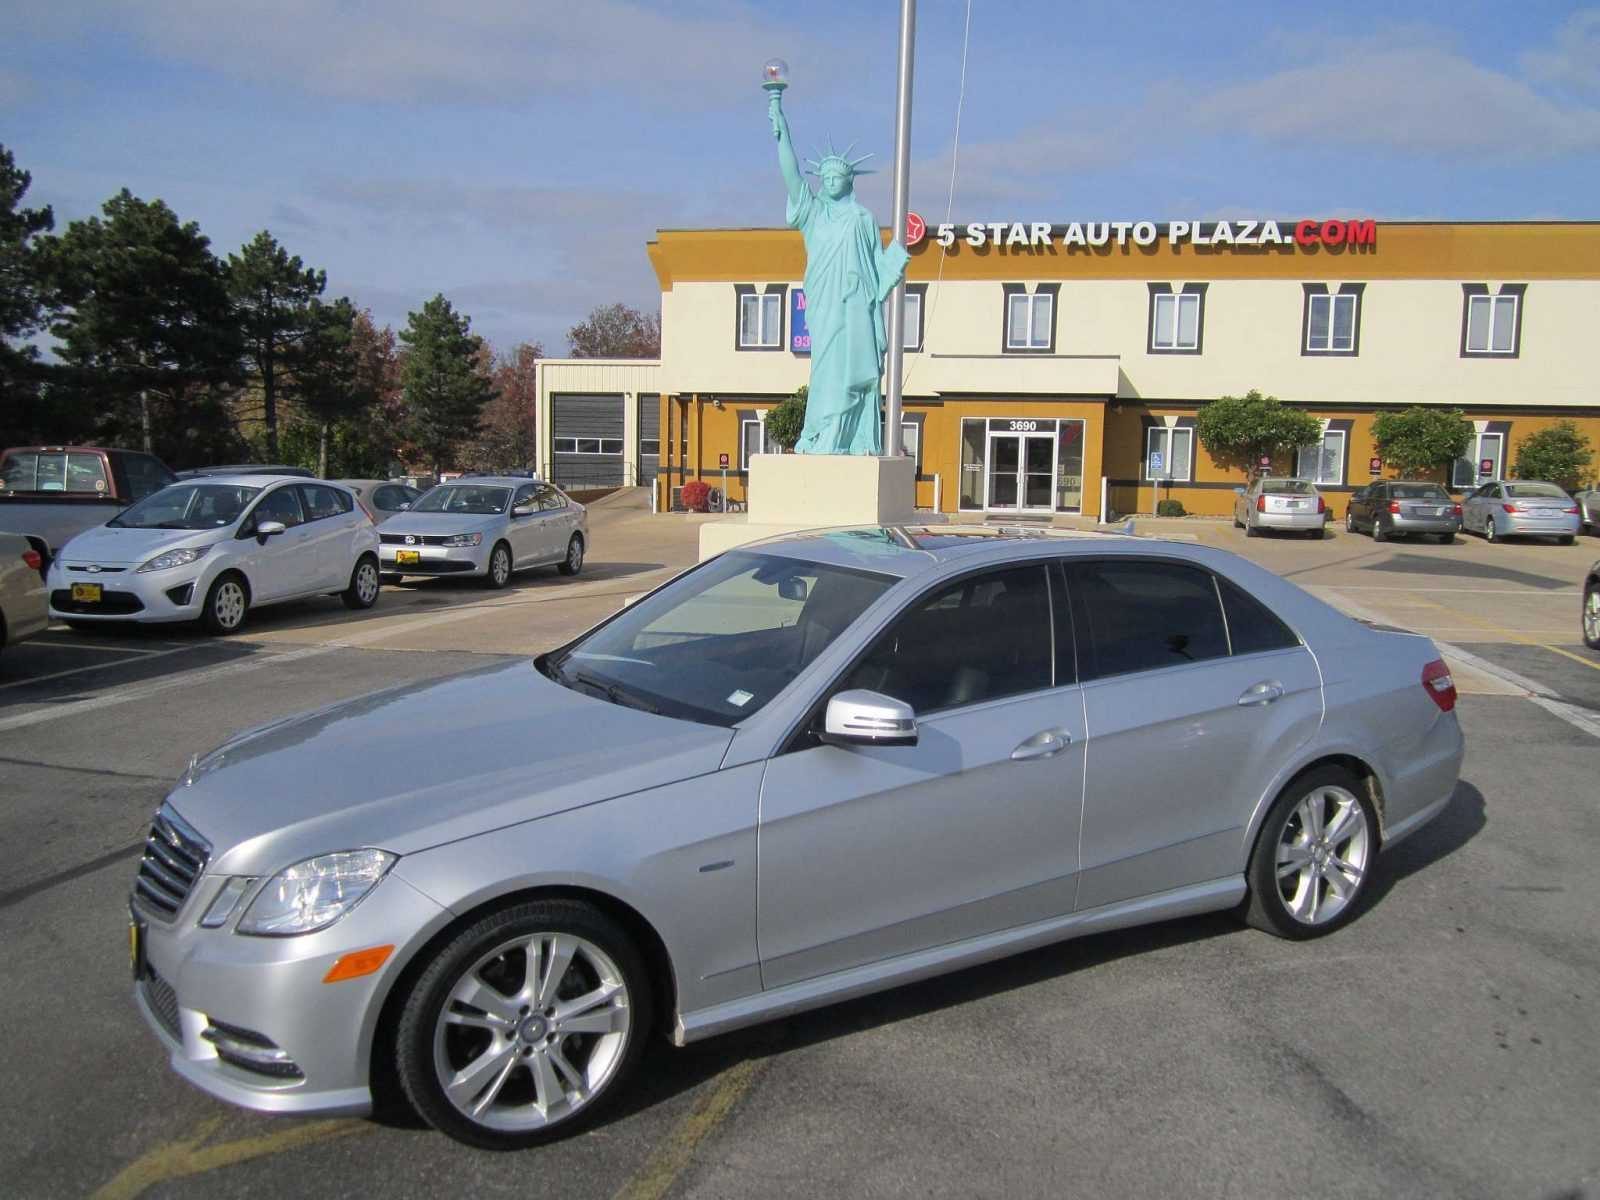 Pre owned mercedes cars for sale in st charles mo for Mercedes benz pre owned vehicles